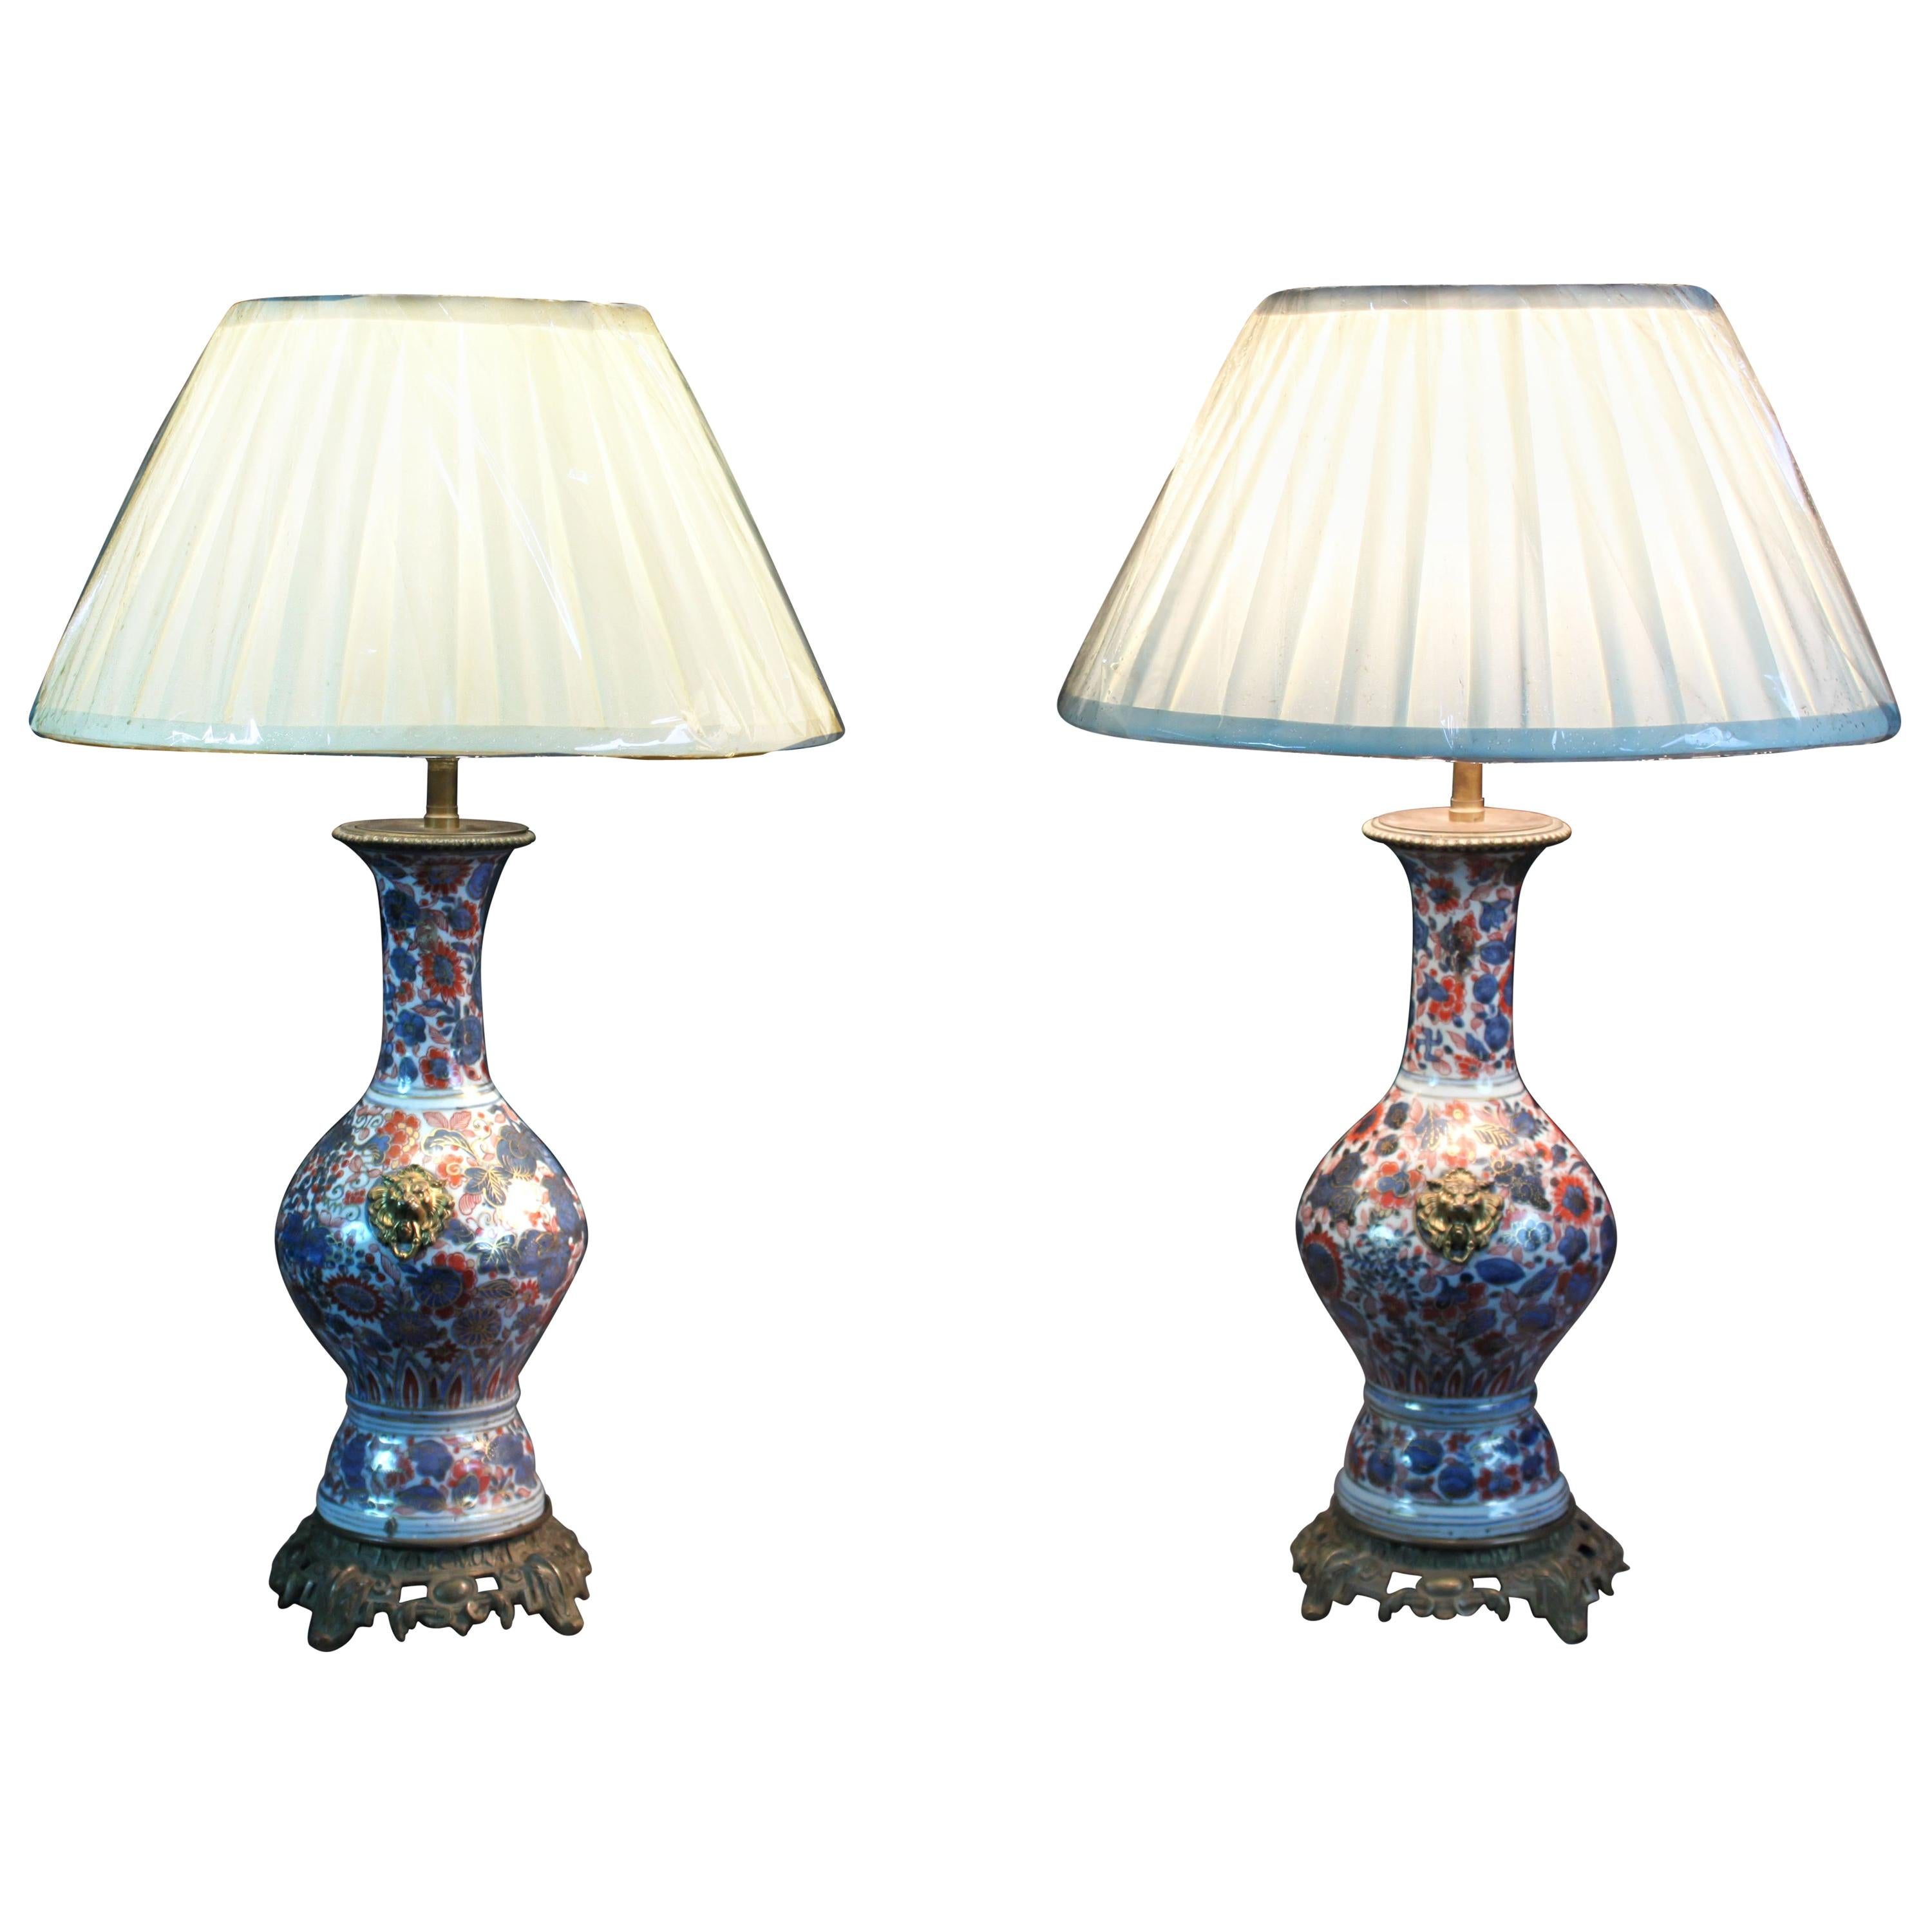 Pair of Chinese Imari Vases Converted into Lamps